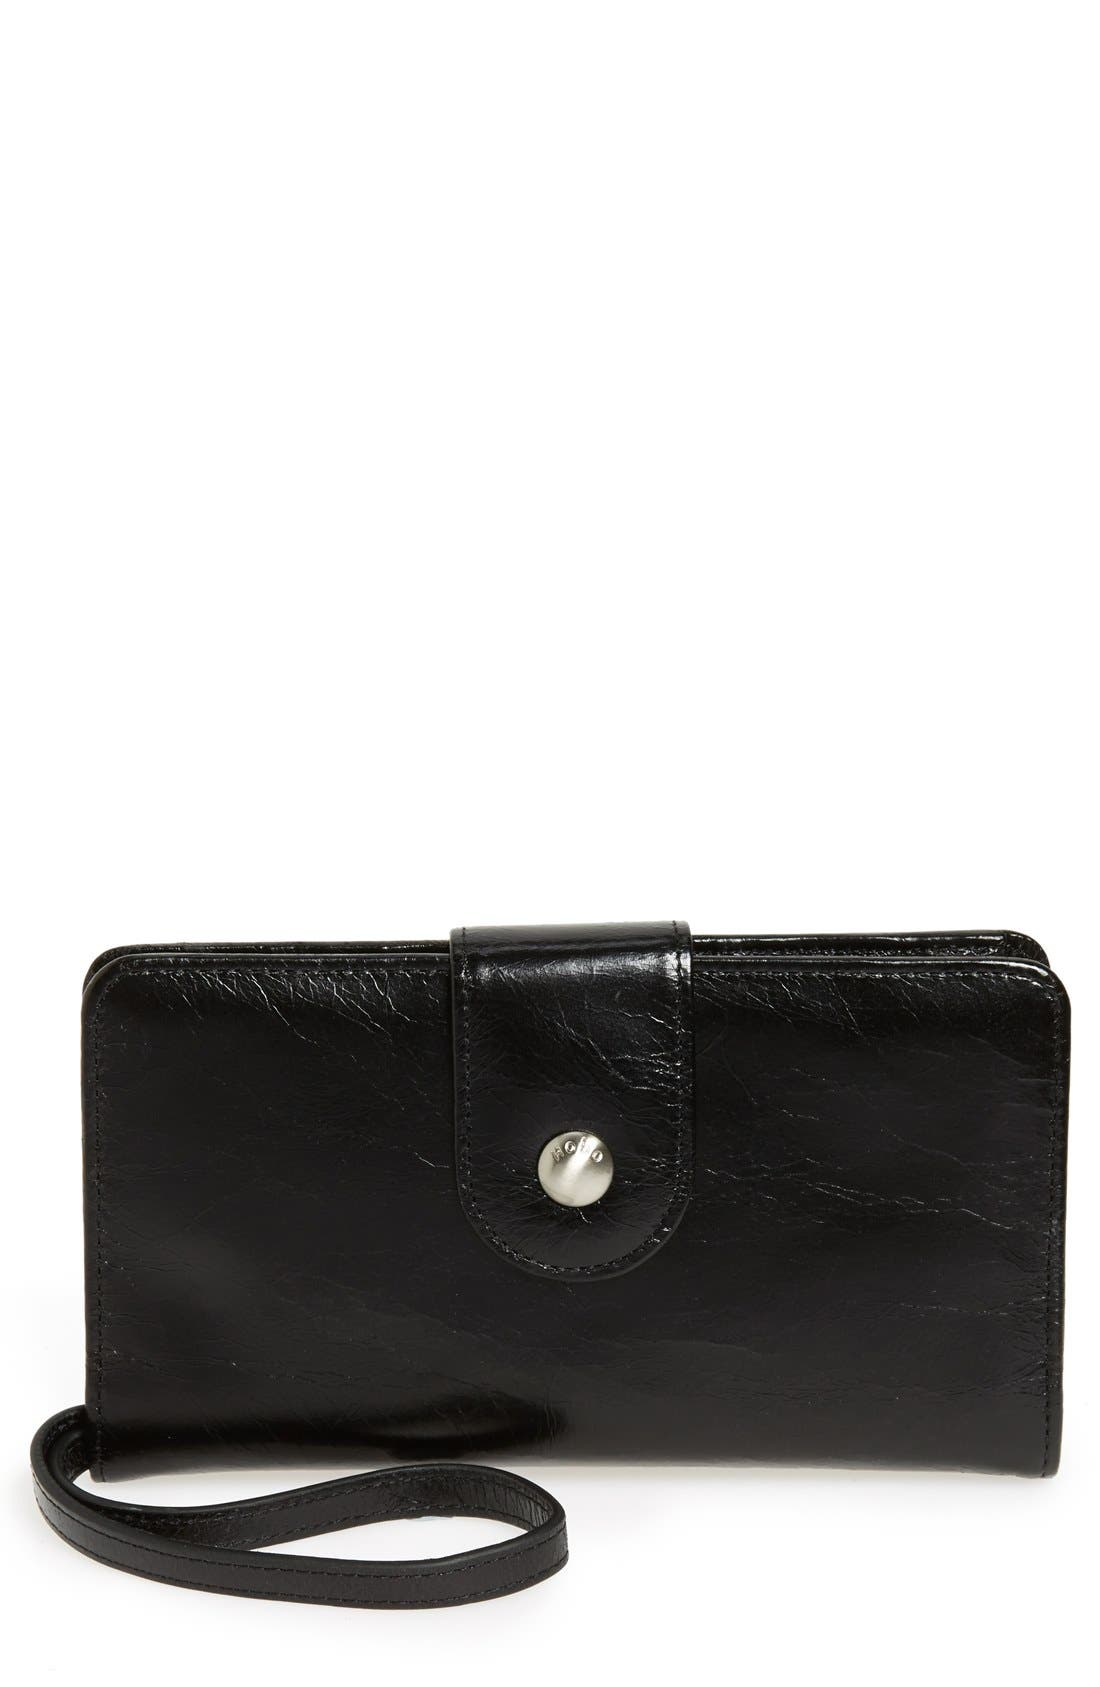 Alternate Image 1 Selected - Hobo 'Danette' Glazed Leather Continental Wallet